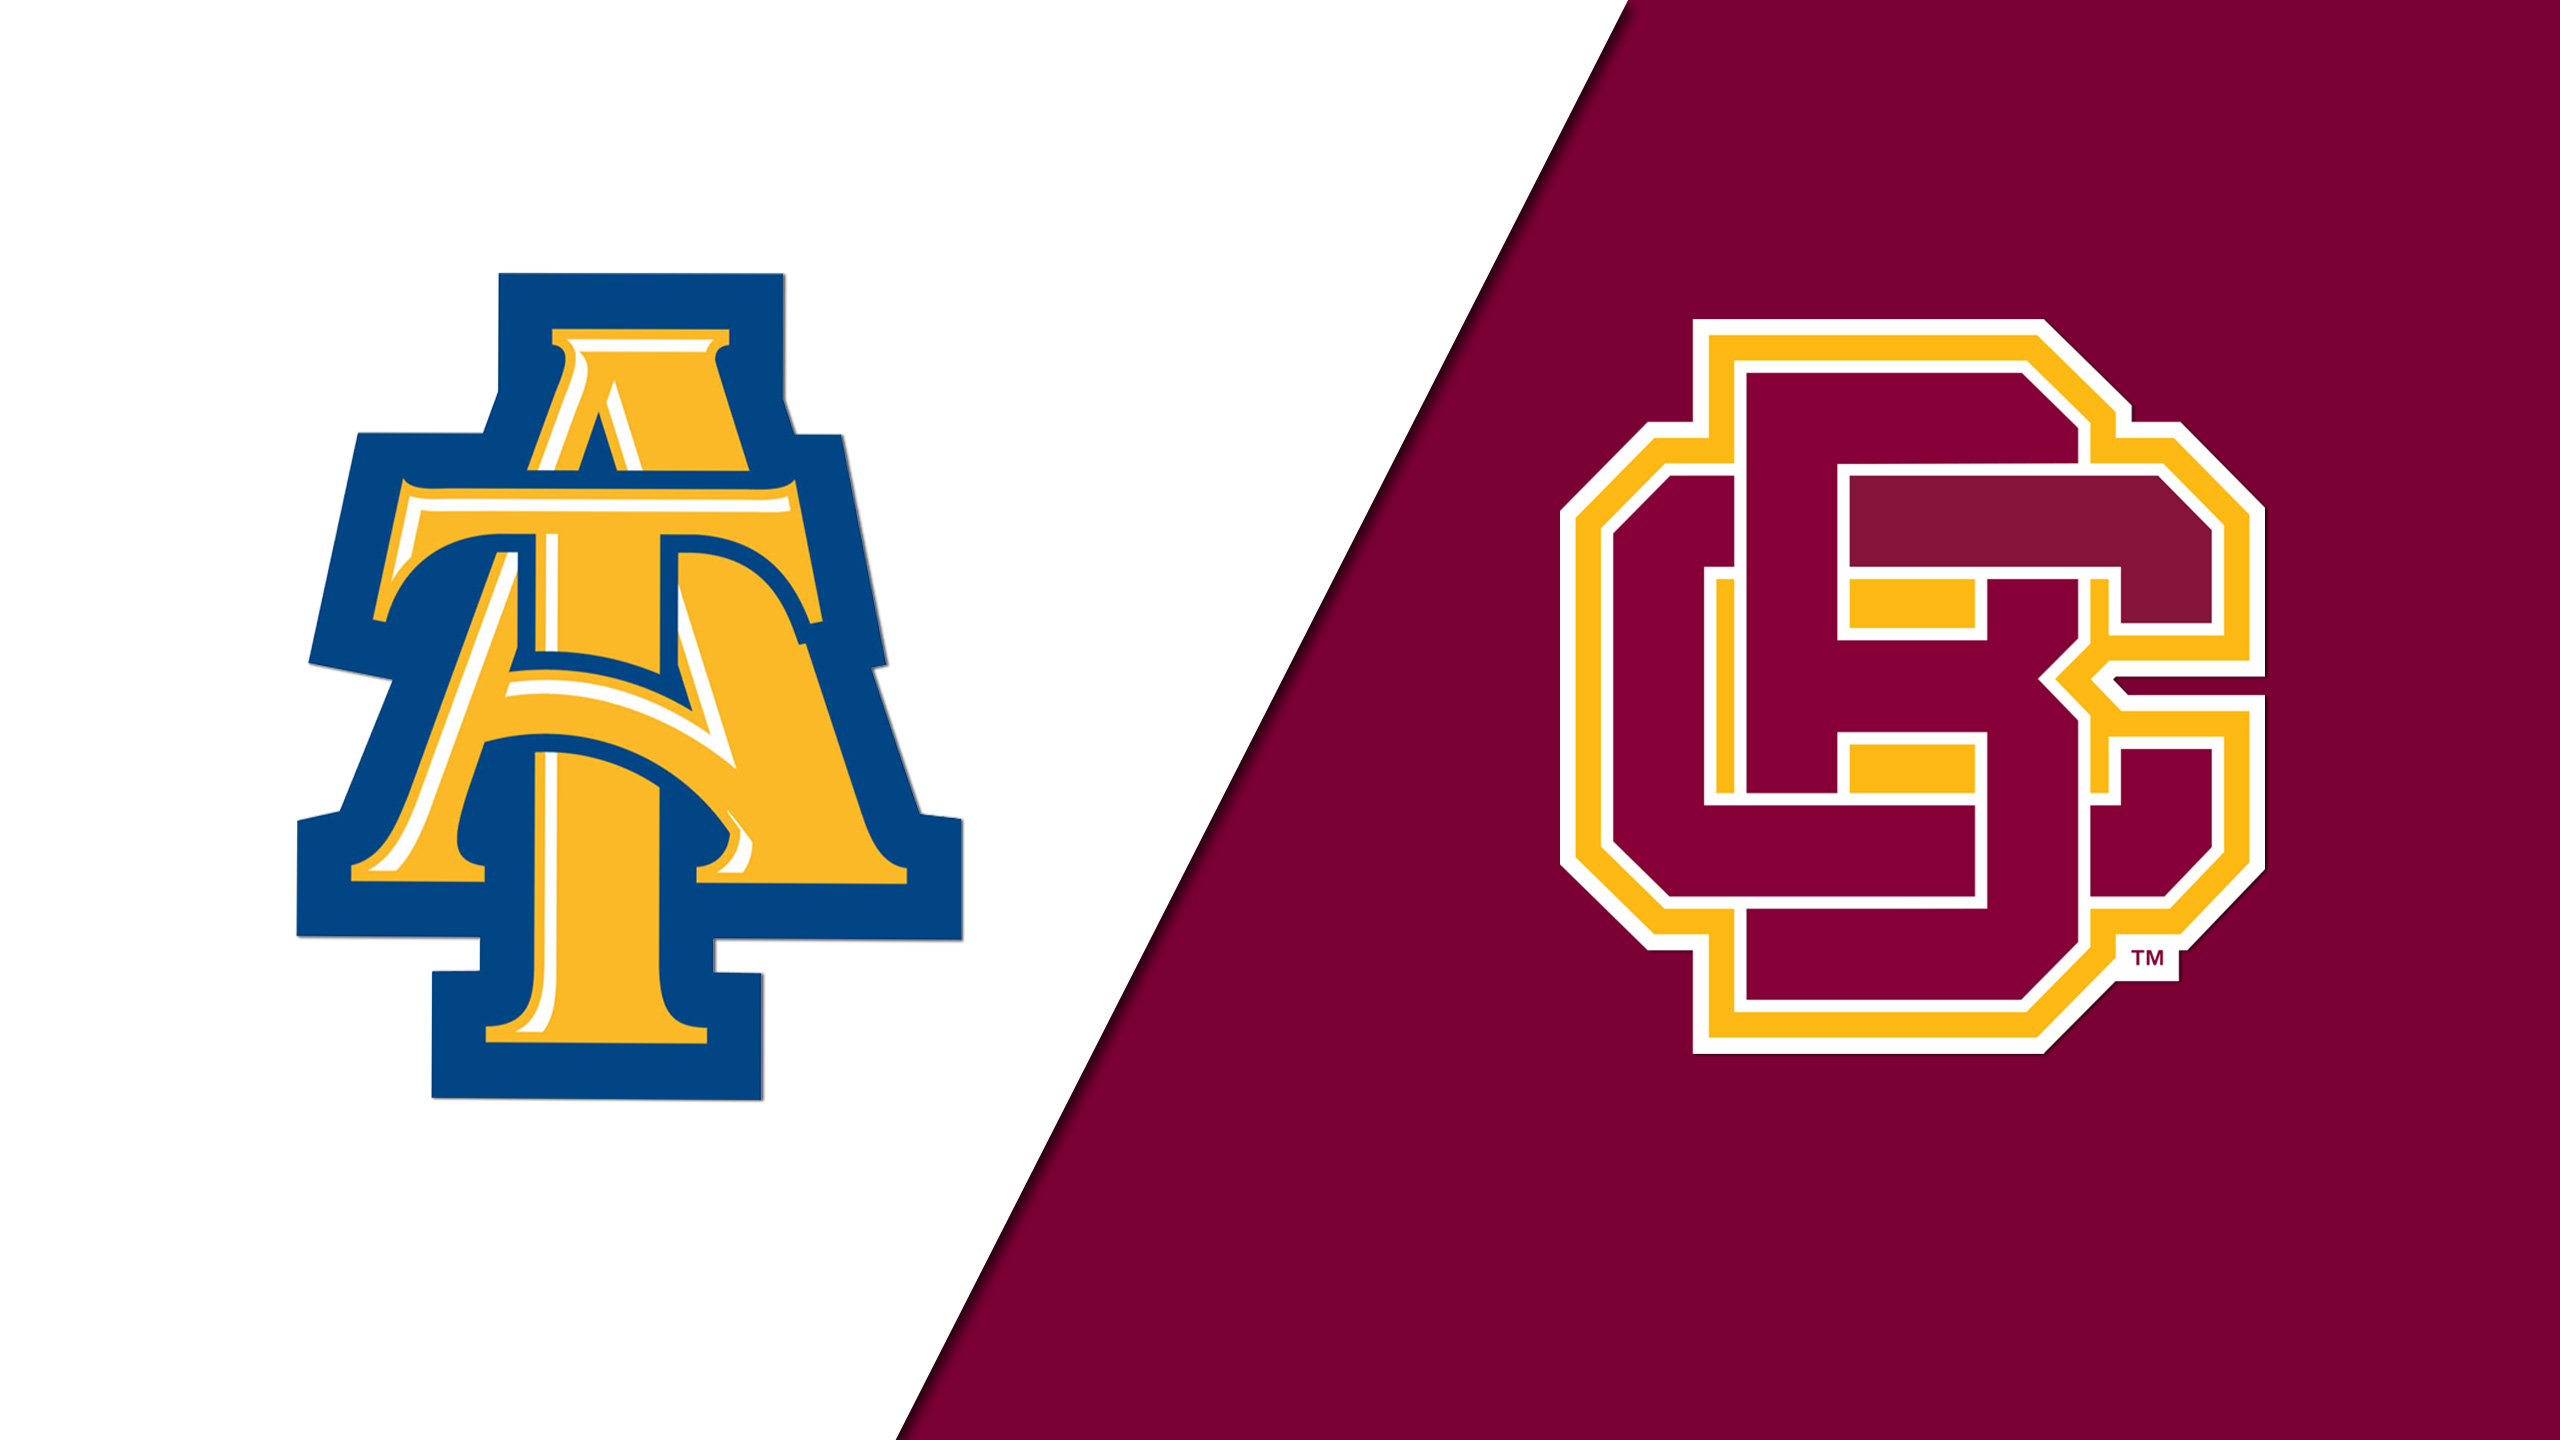 North Carolina A&T vs. Bethune-Cookman (Football)